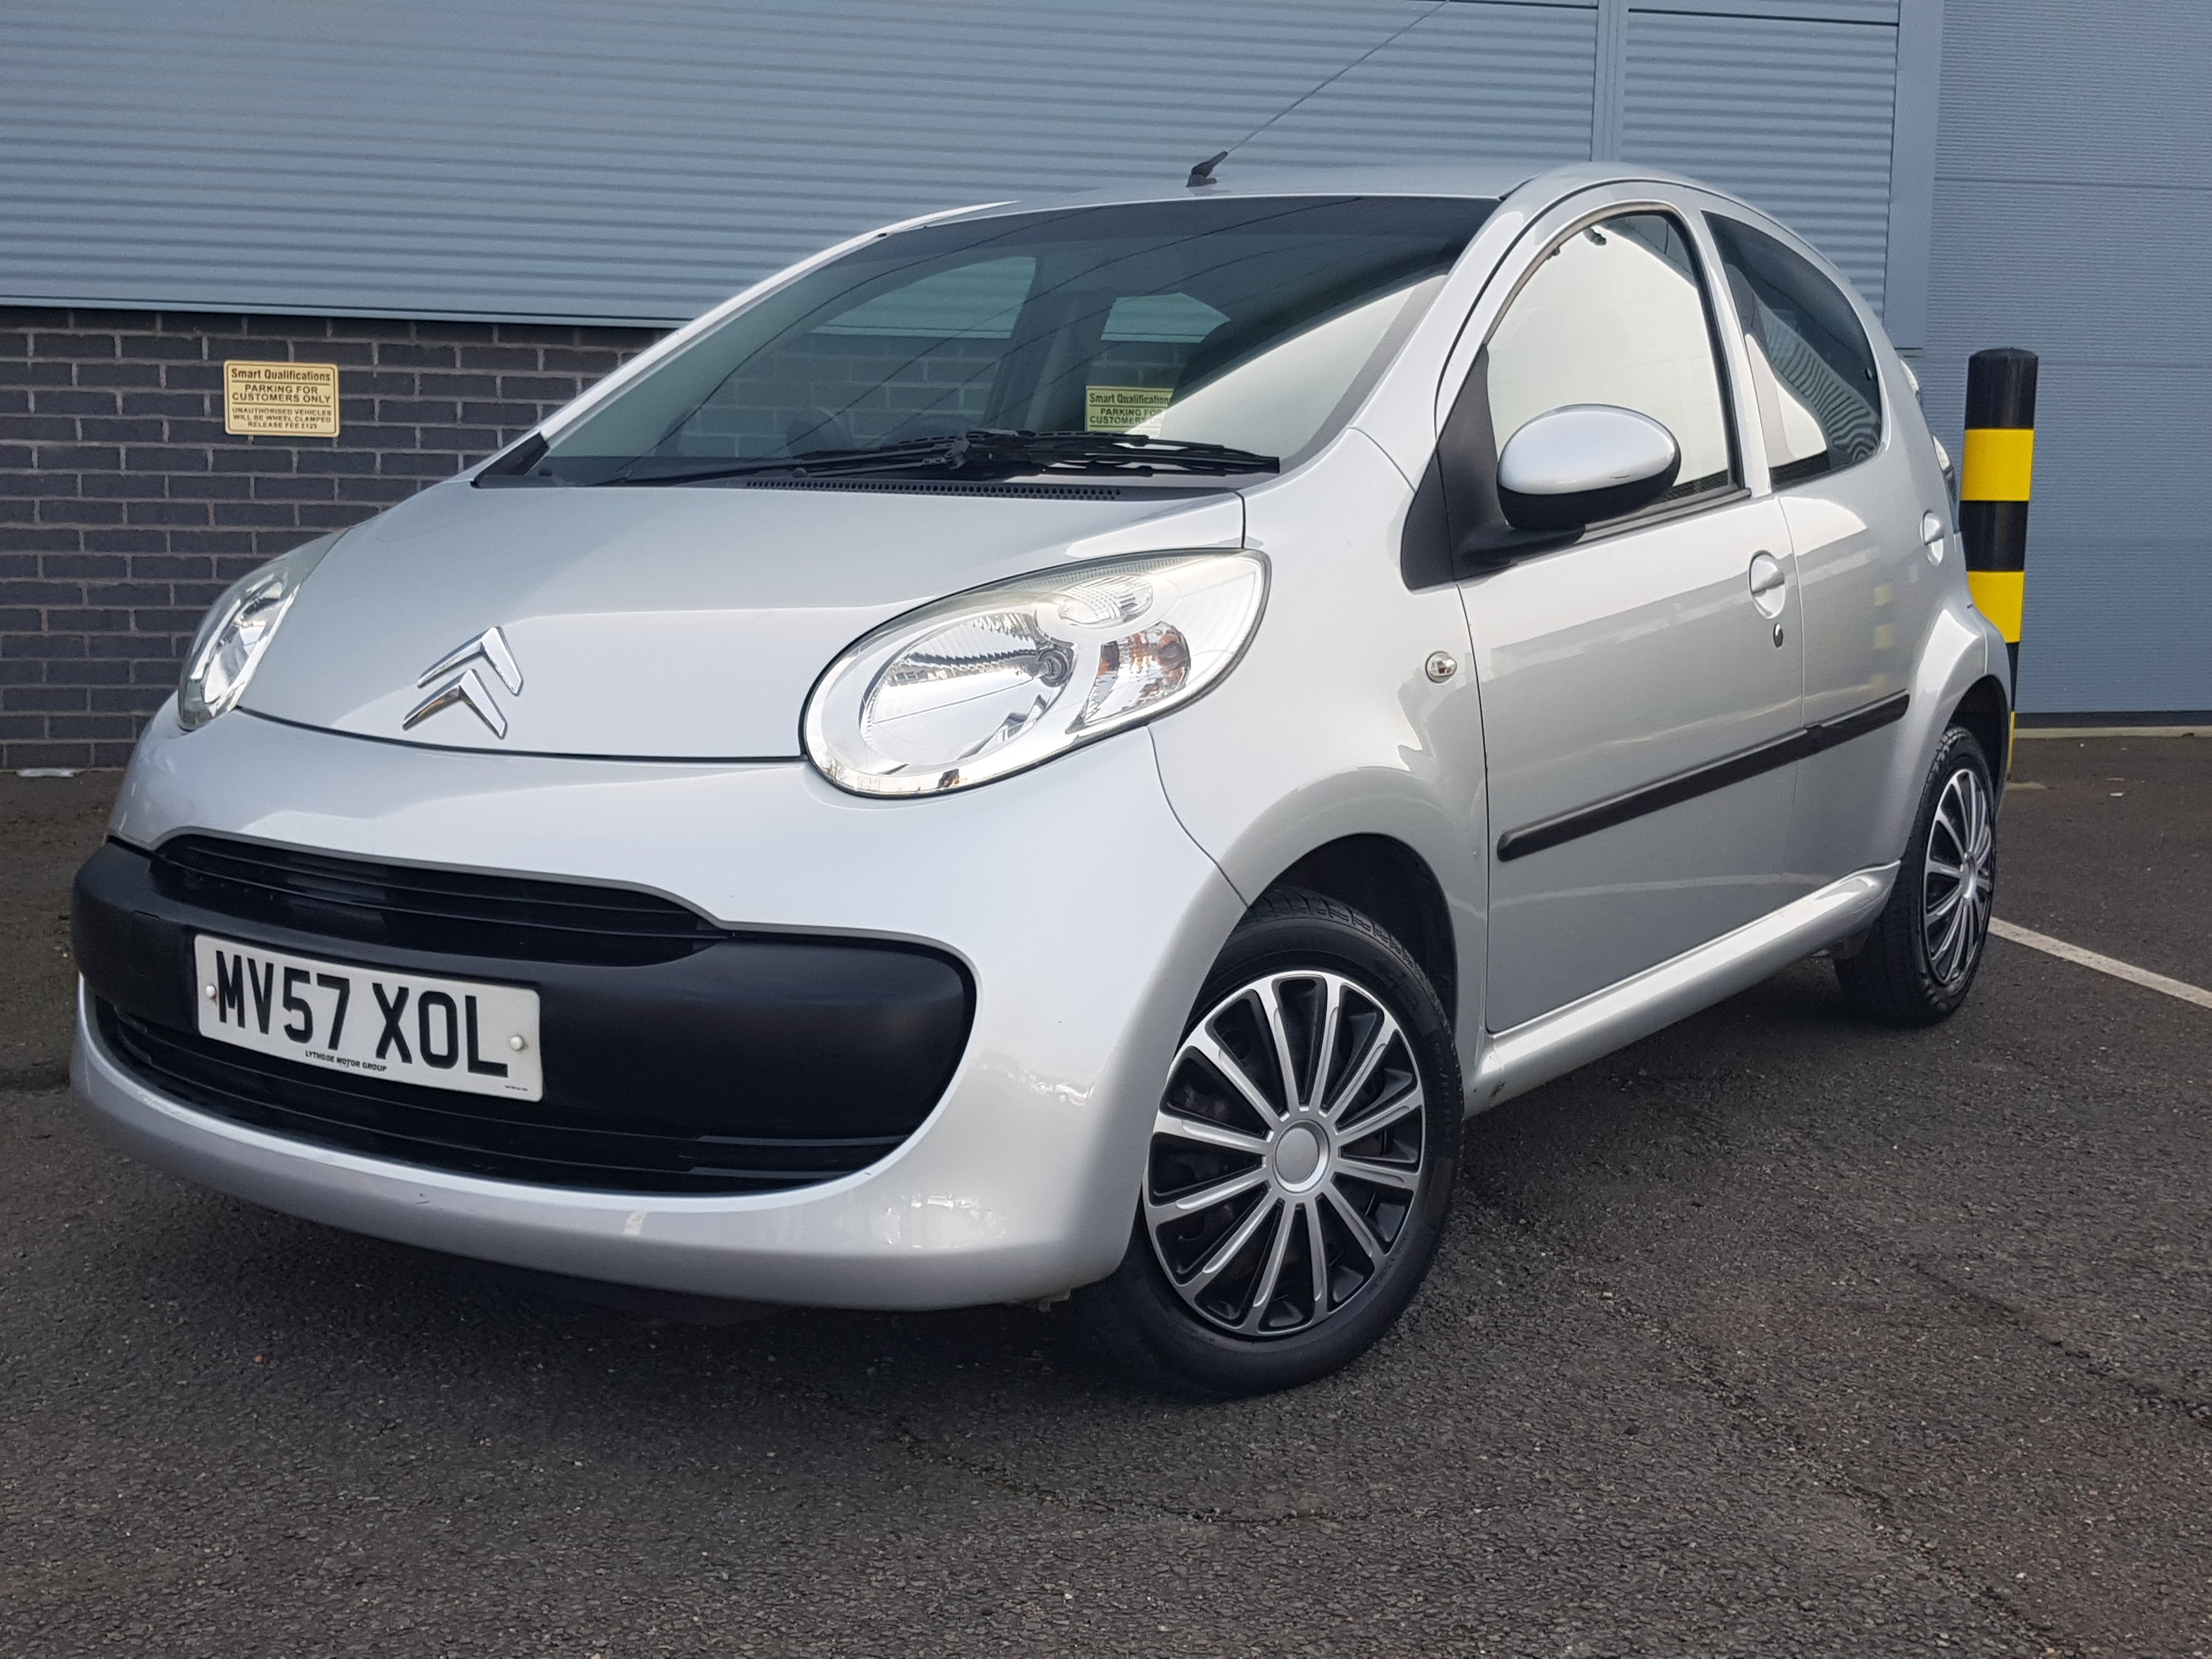 2007/57 CITROEN C1 1.4 HDI RHYTM 5DR ***£20 TAX PER YEAR***